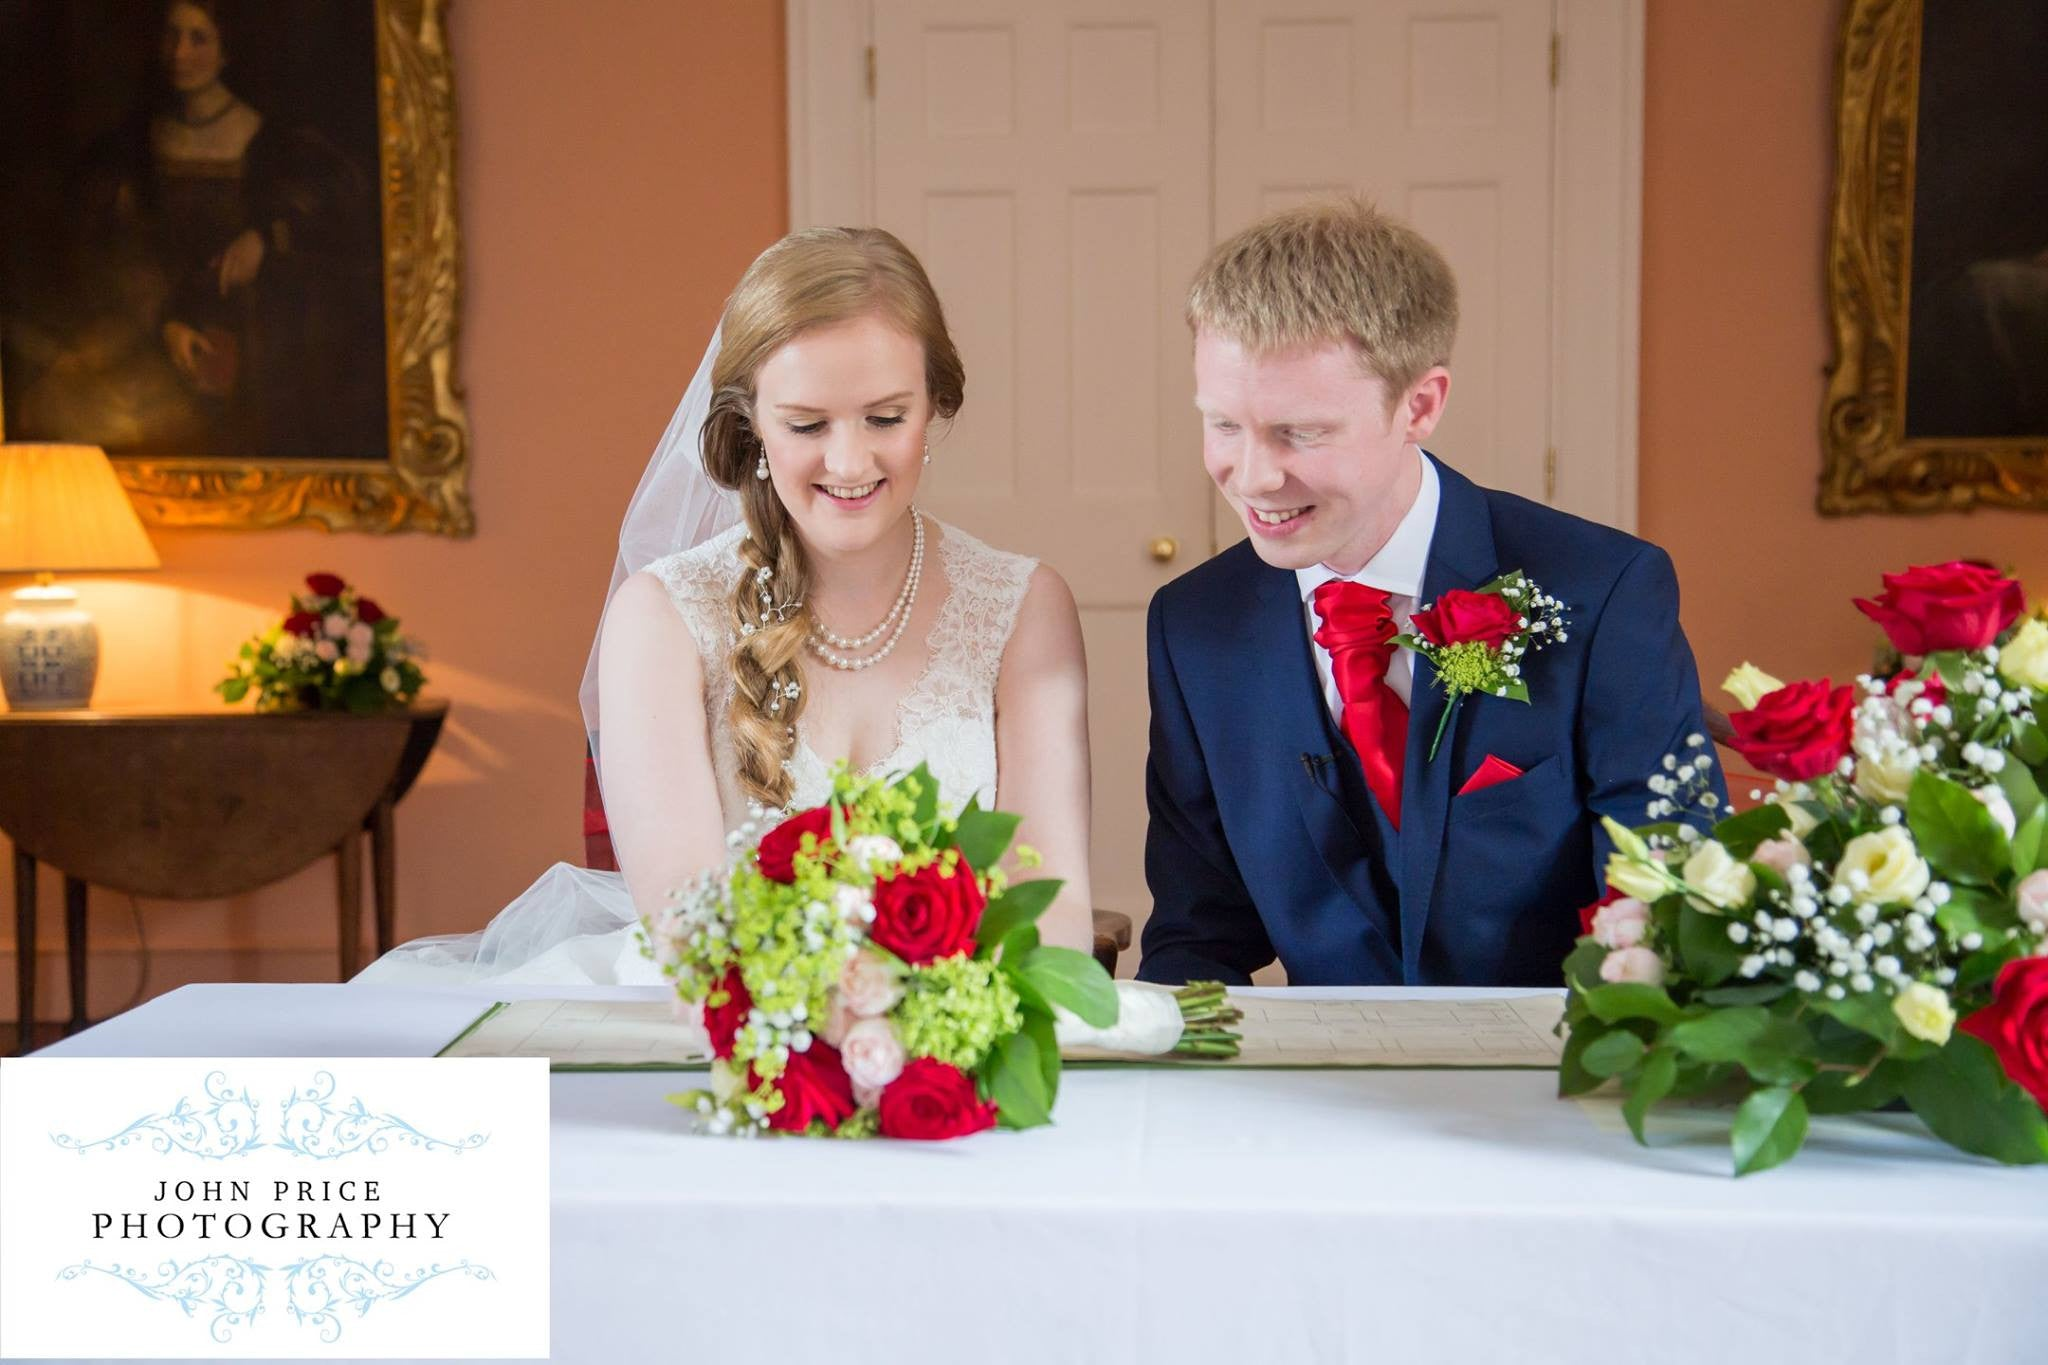 Bride and Groom signing wedding register with bridal flowers and buttonhole.